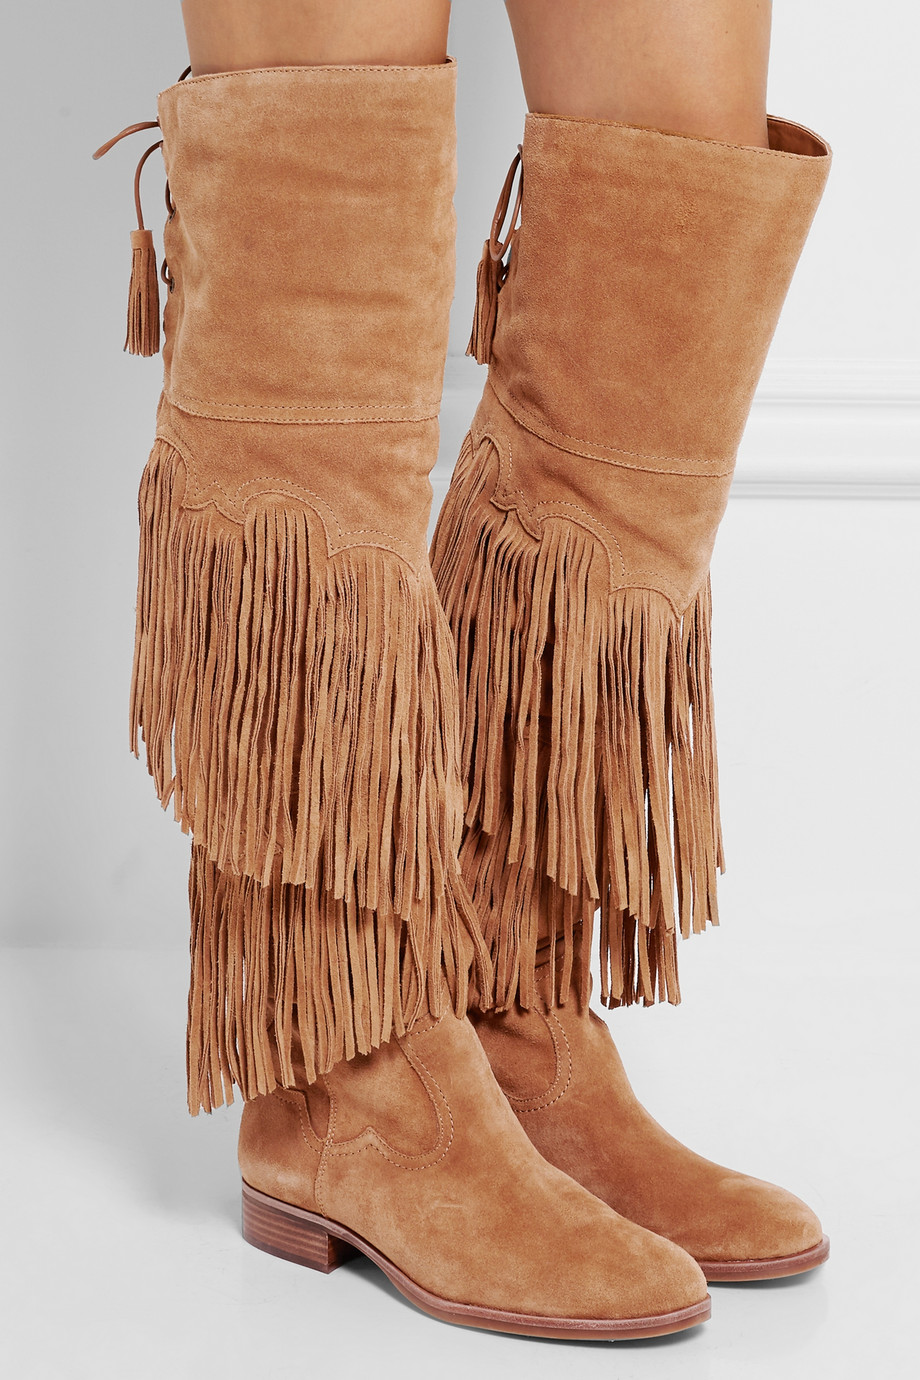 Winter Brown Fringed Over the Knee Boots Fashion Back Lace-up Flat Tassel Boots Woman Riding Boots High Quality Boots